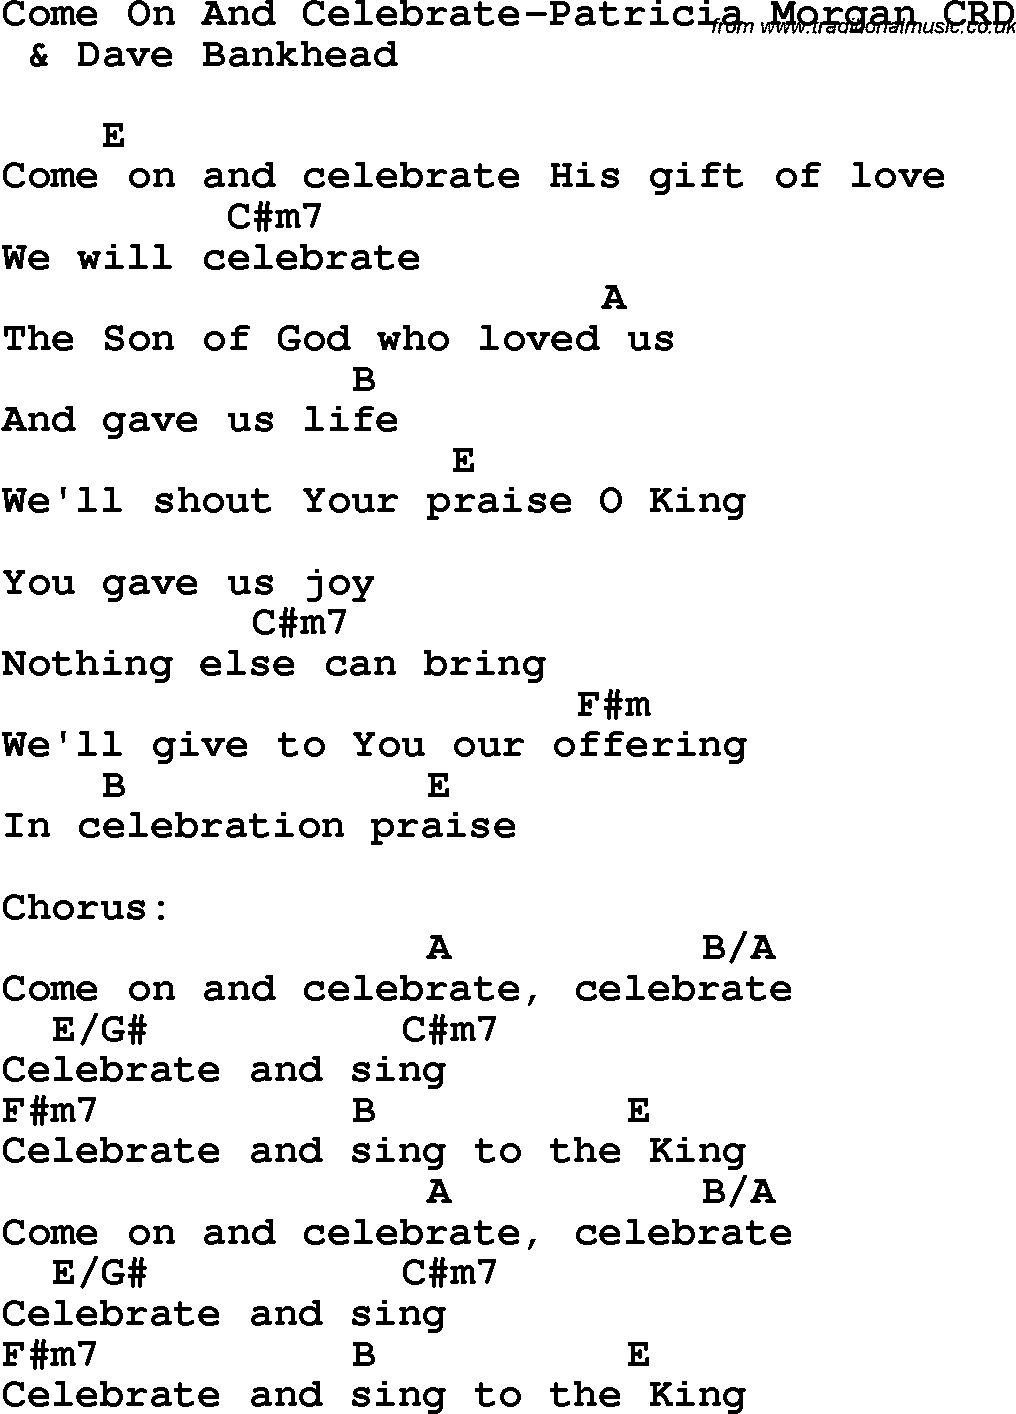 Christian childrens song come on and celebrate patricia morgan christian chlidrens song come on and celebrate patricia morgan crd lyrics chords hexwebz Choice Image